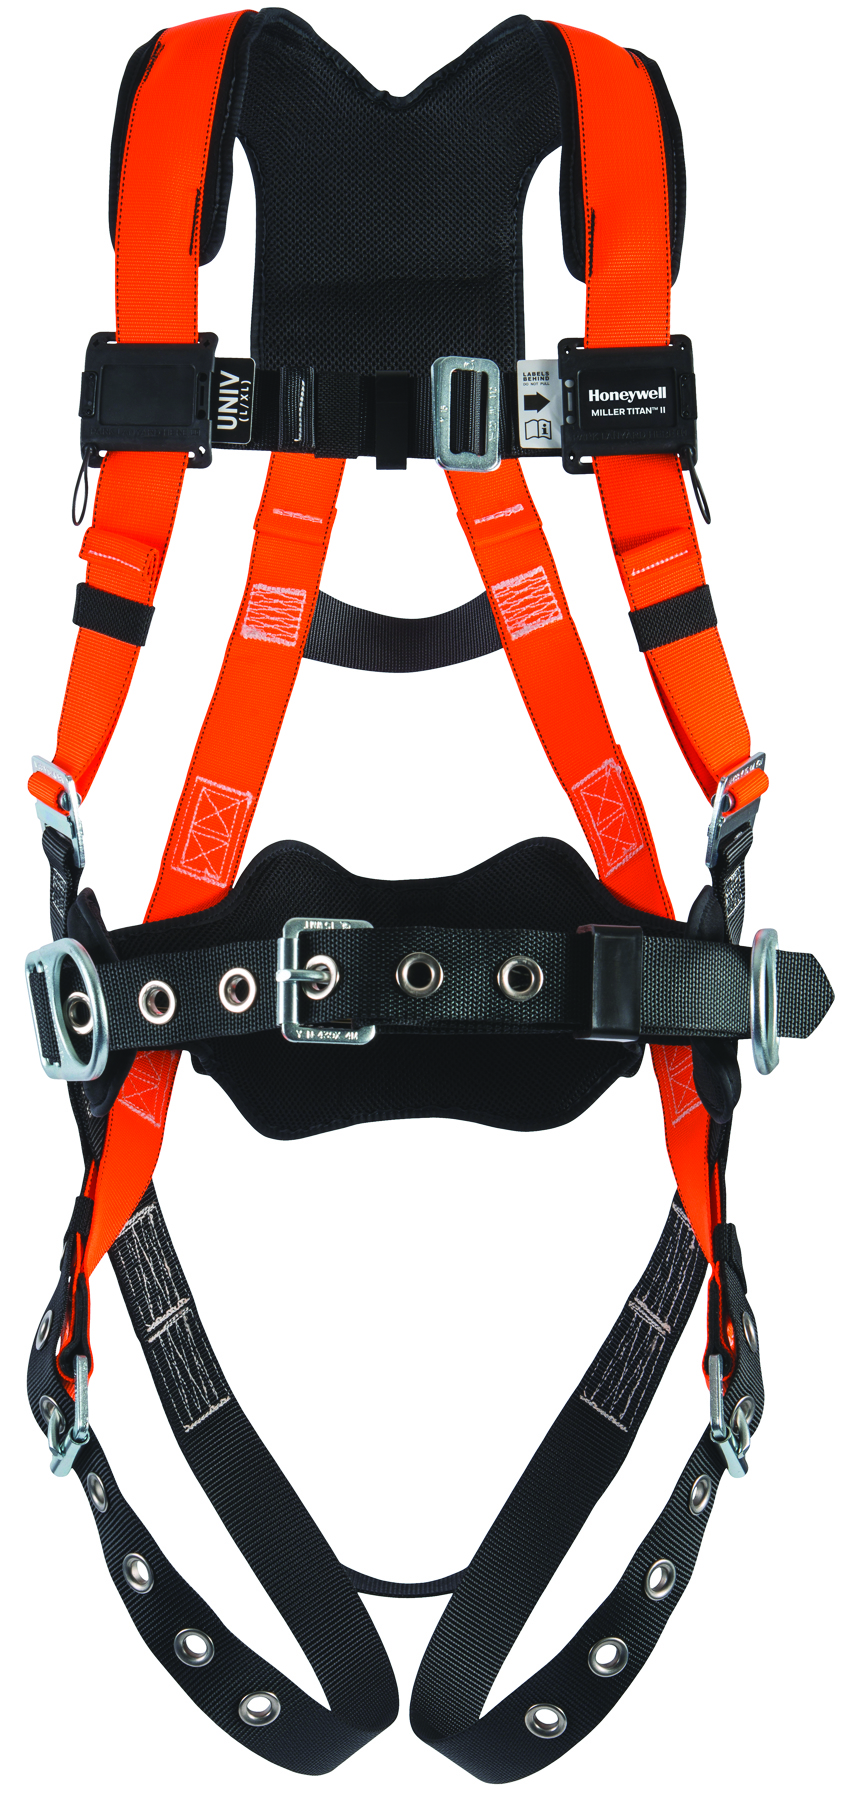 T4577/UAK - Miller Titan™ II Non-Stretch Harnesses-With Sliding Back D-Ring; Tongue Buckle Legs, Mating Buckle Chest; Friction Buckle Shoulder Straps; Side D-Rings; Shoulder/Waist Padding and Removable Belt-Universal Size (Large/XLarge)----UOM: 1/EA